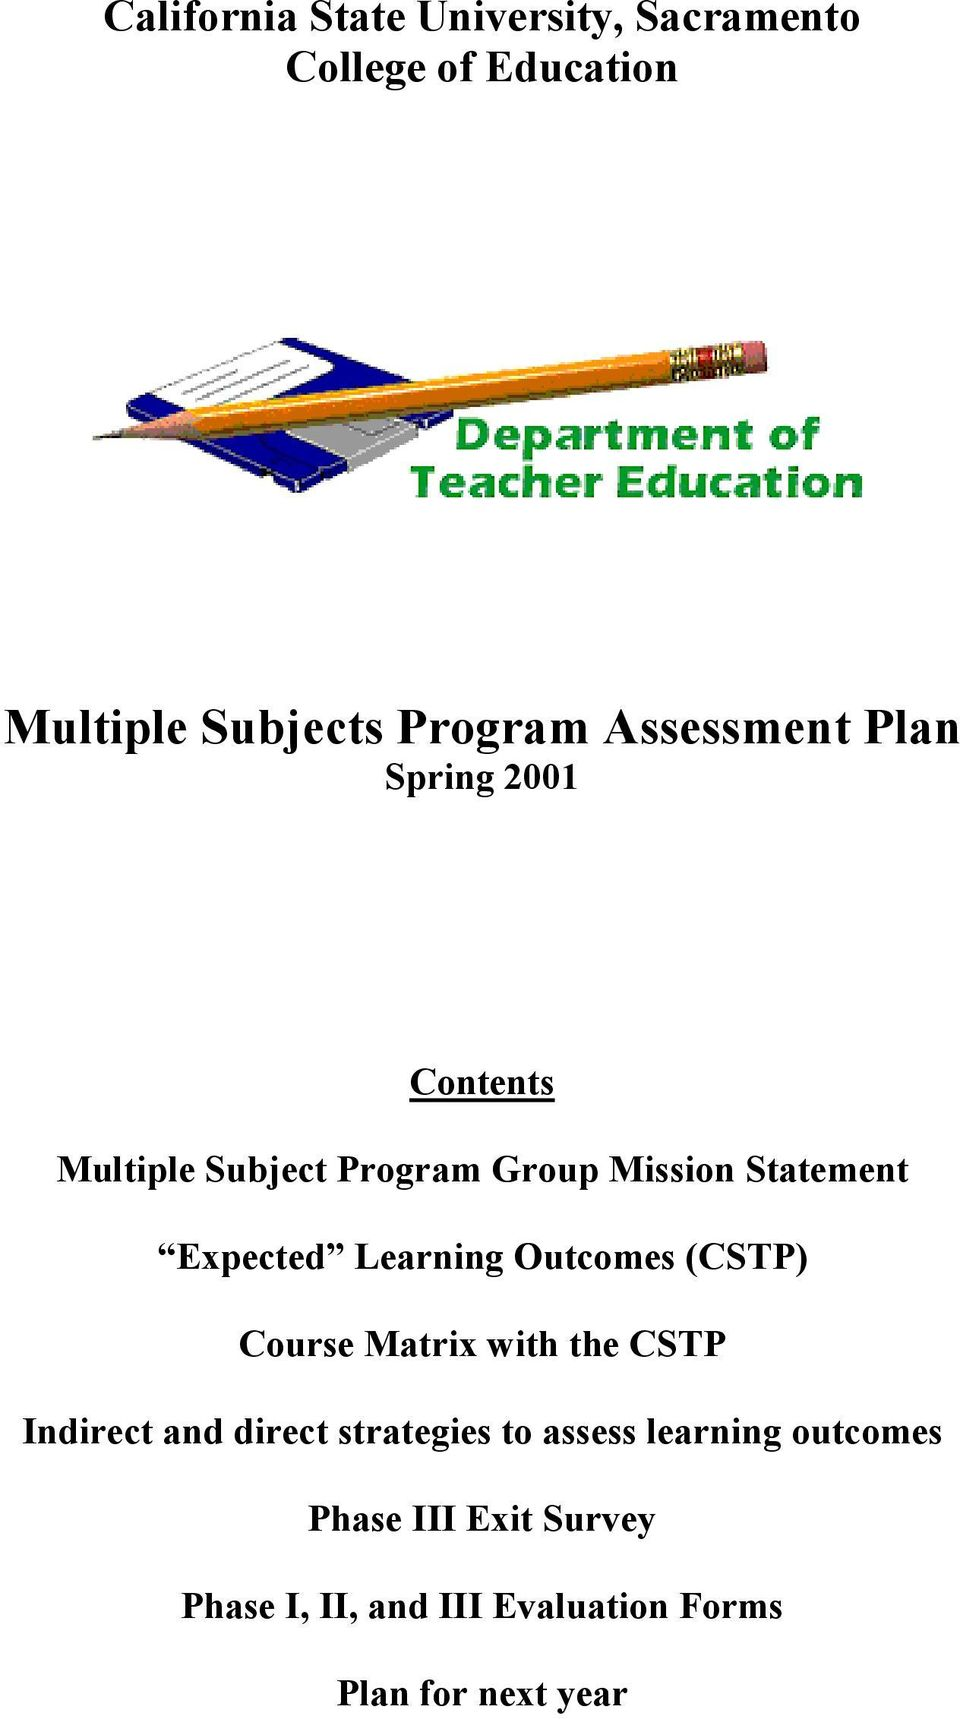 Expected Learning Outcomes (CSTP) Course Matrix with the CSTP Indirect and direct strategies